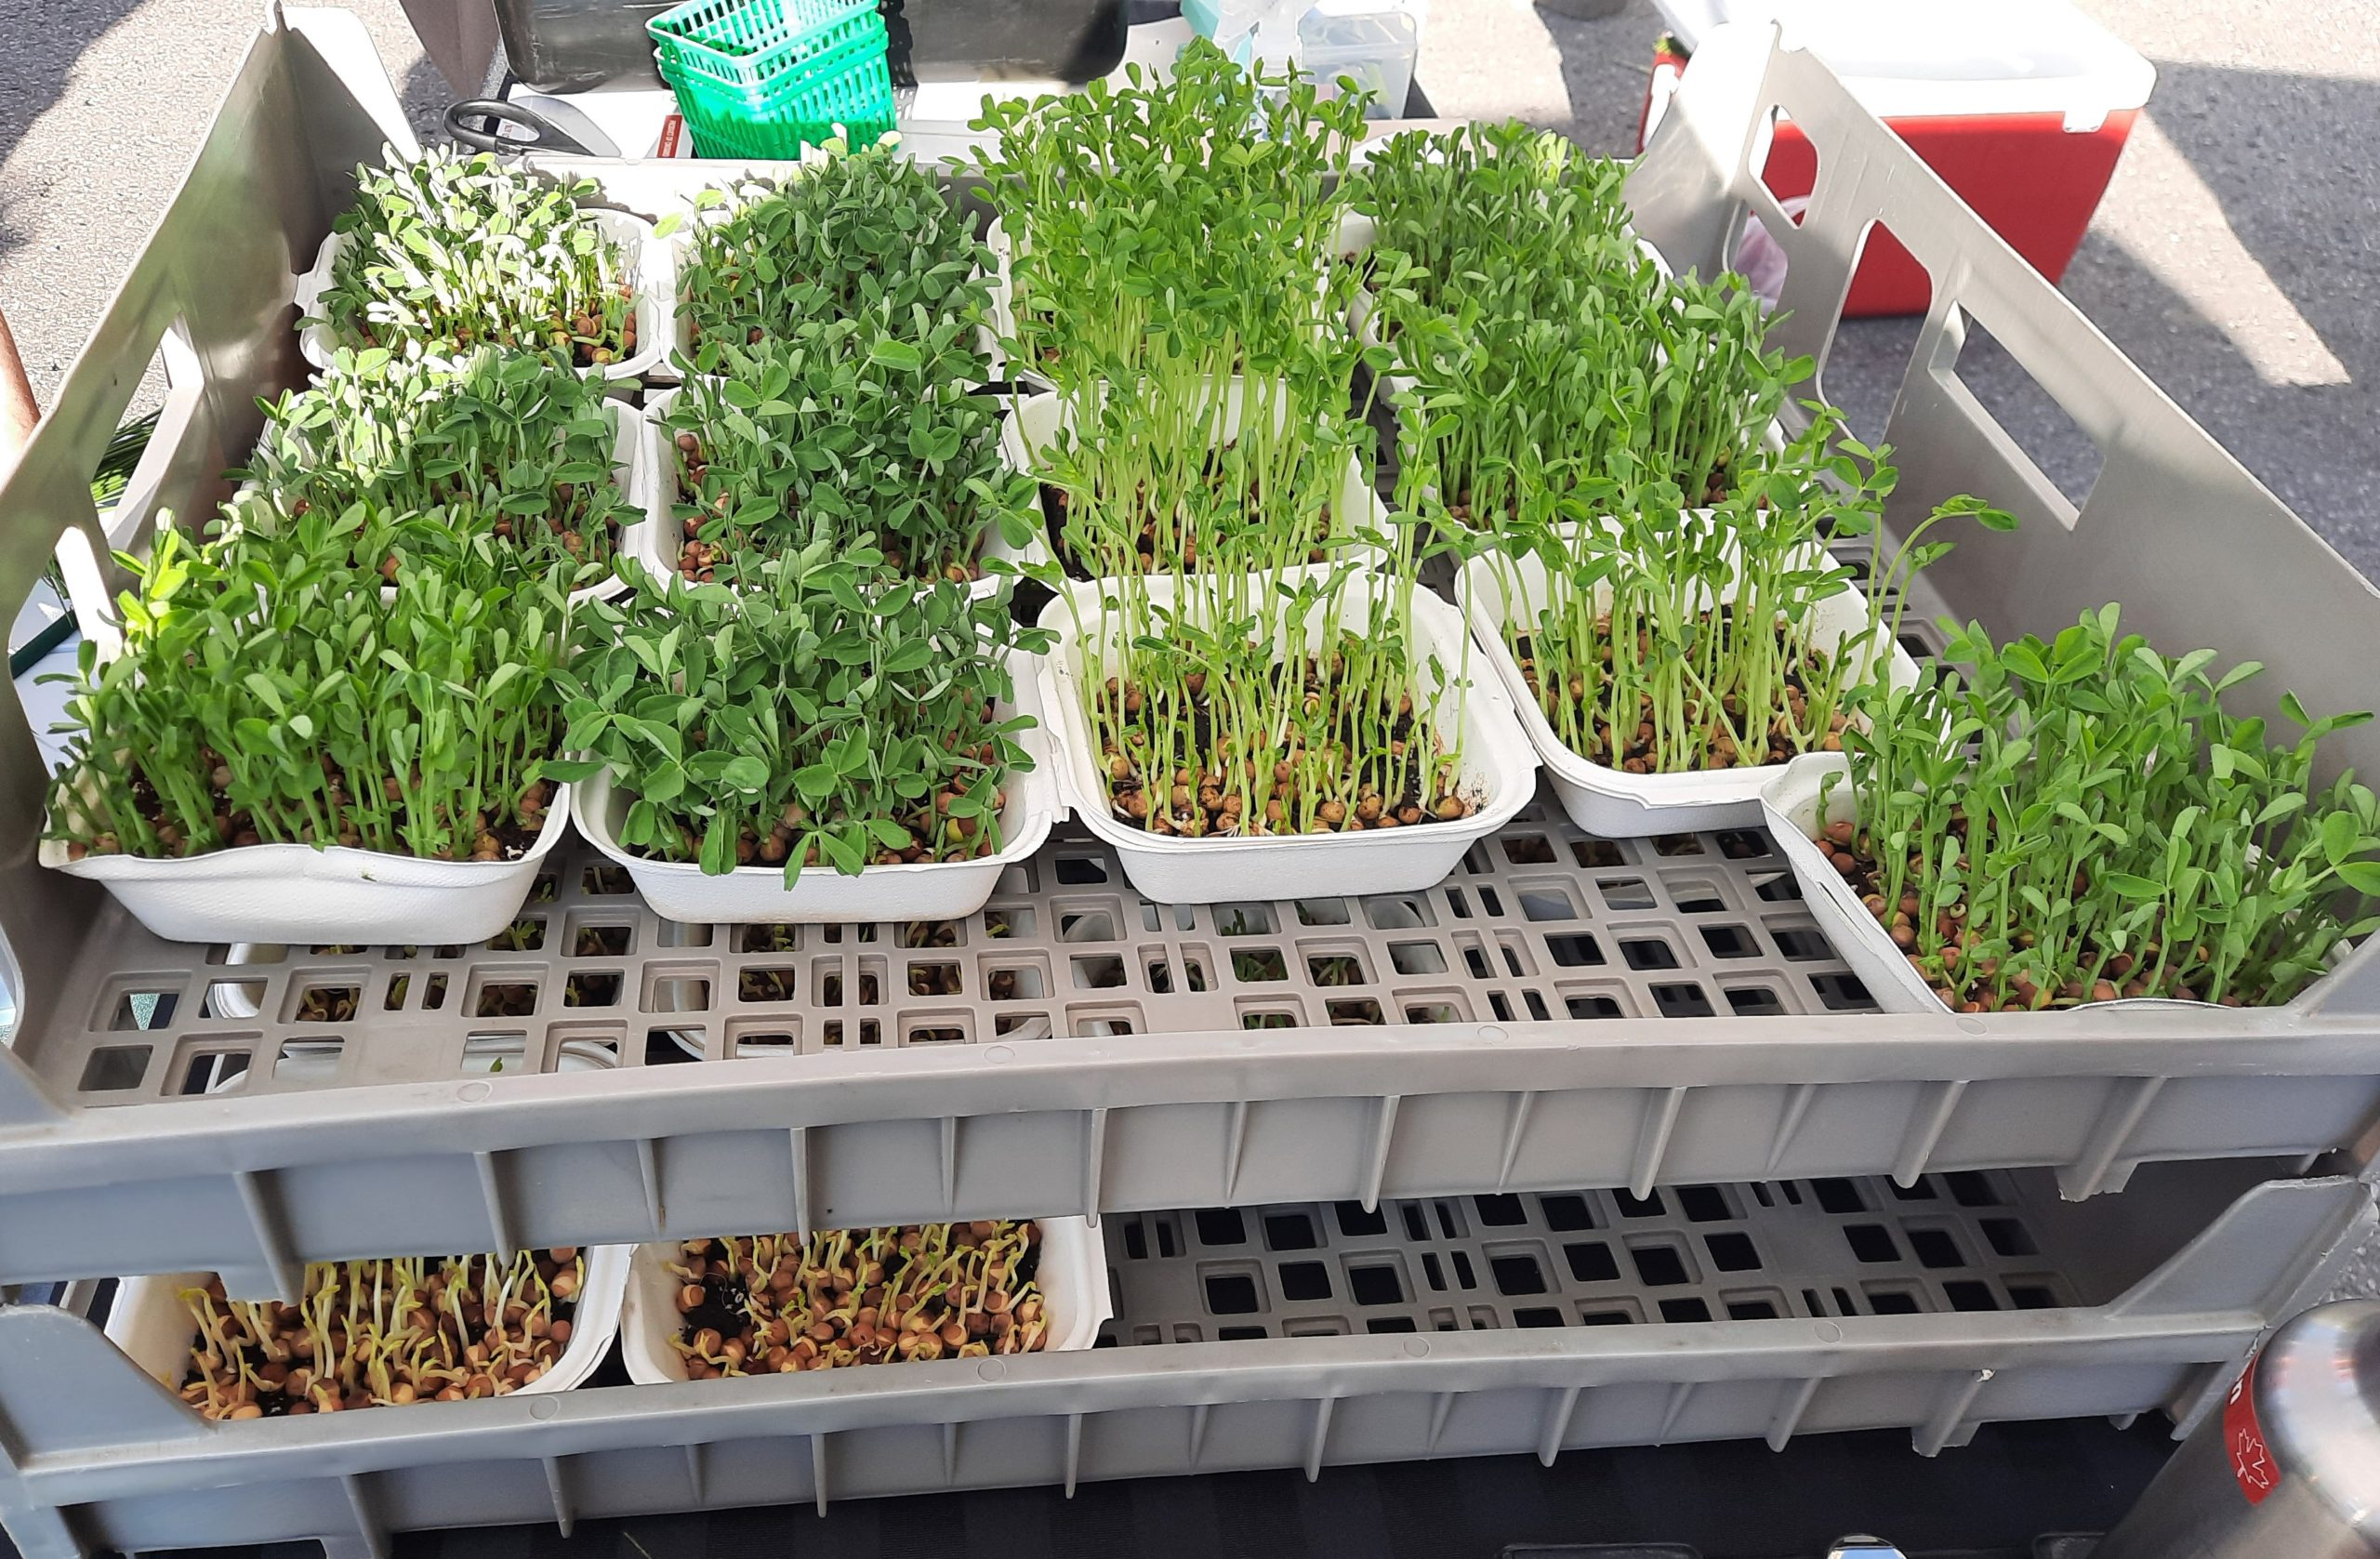 Micro greens ready for new homes at the market